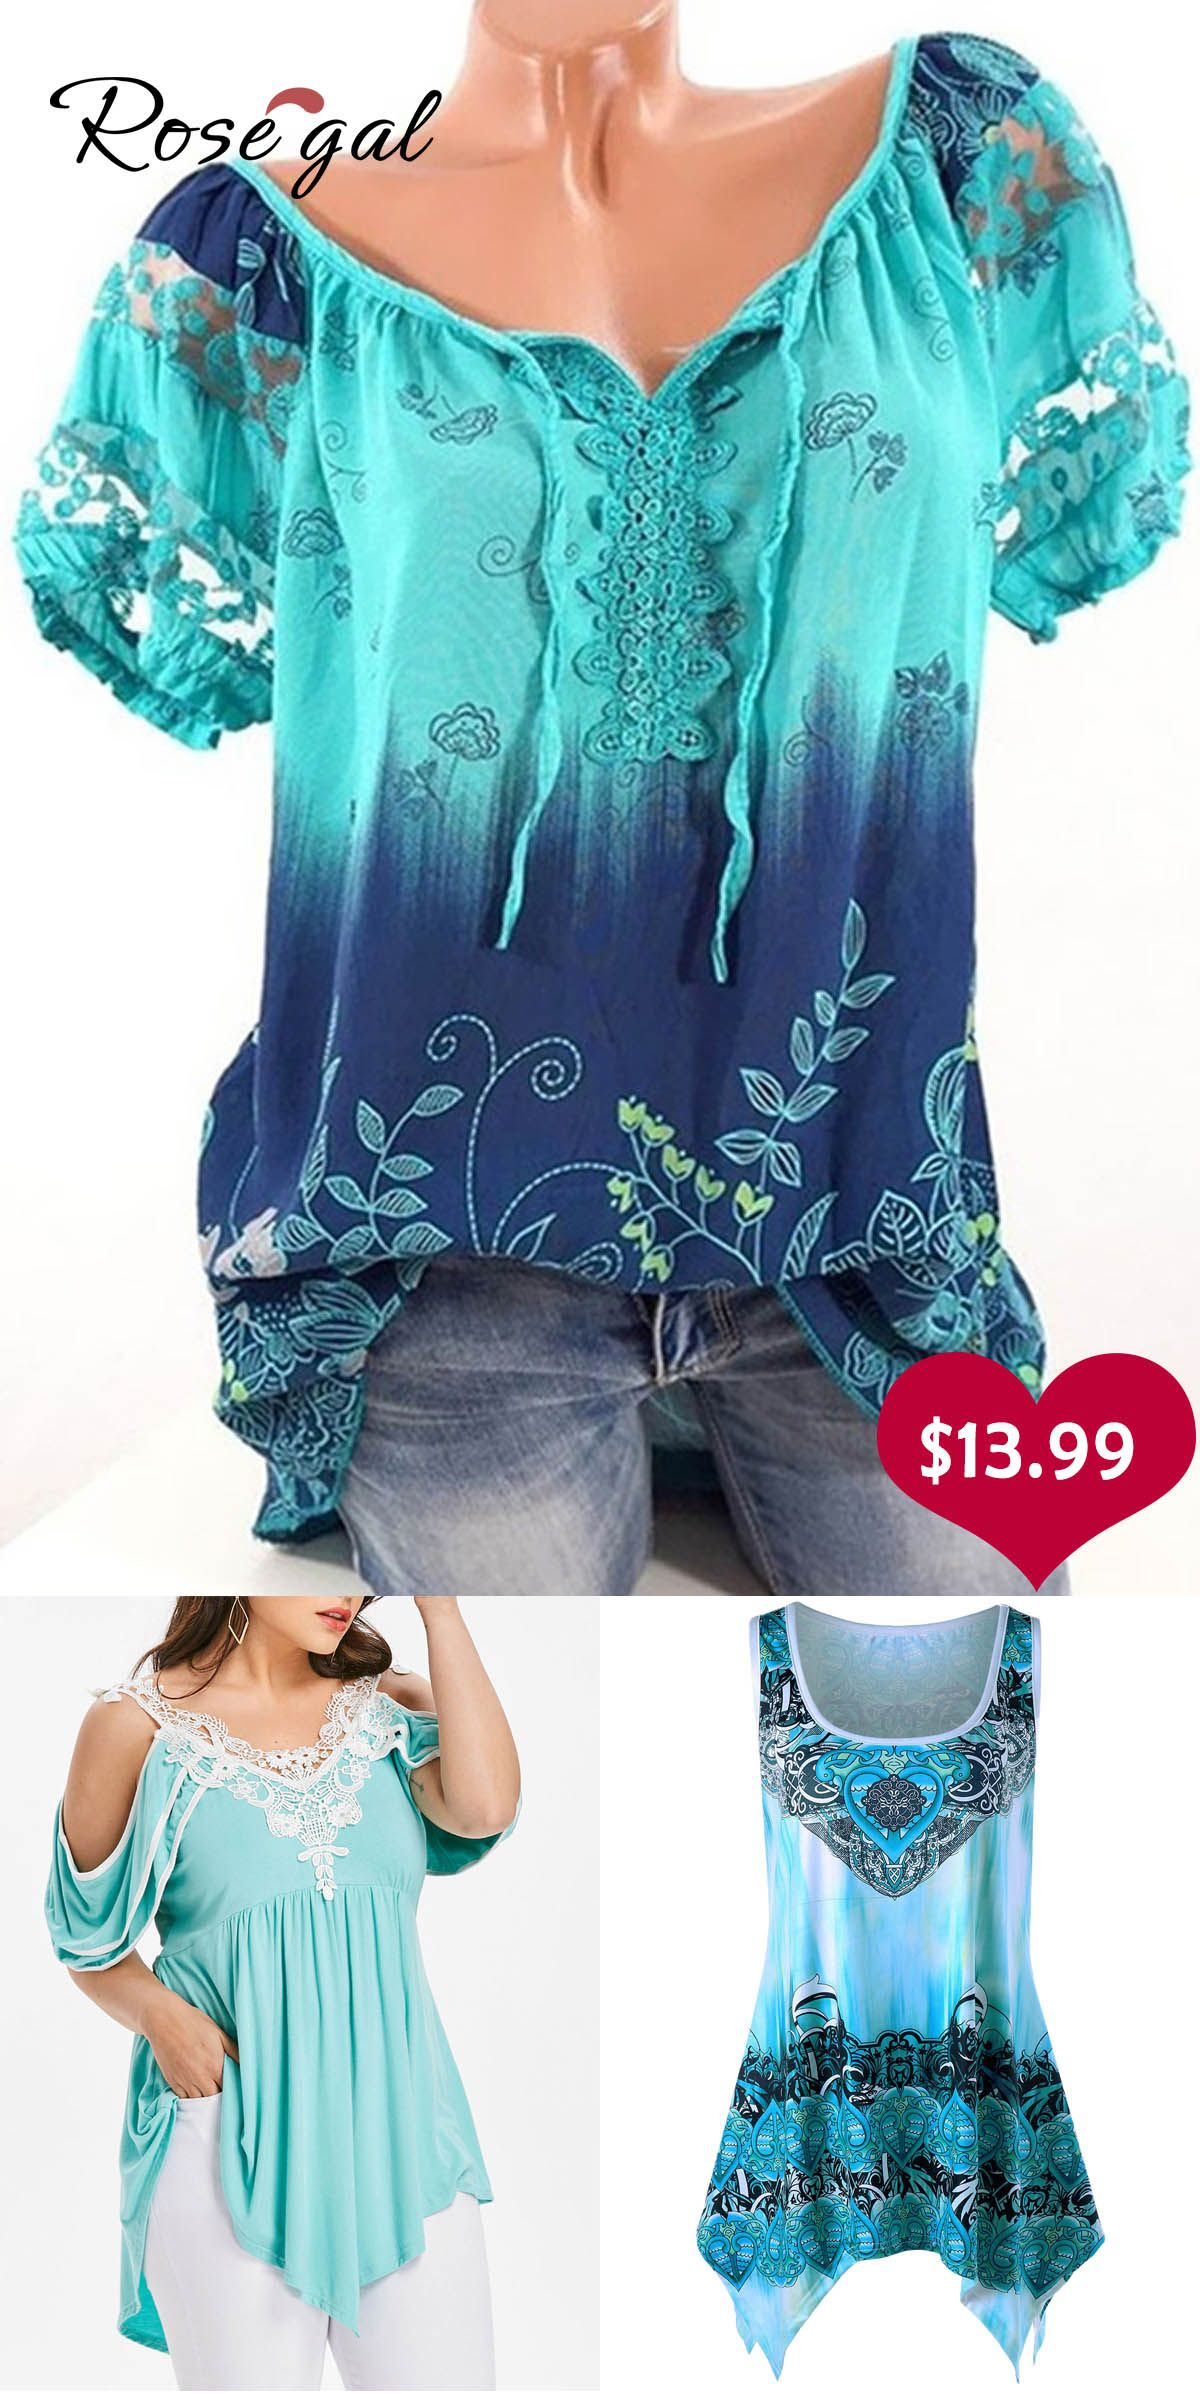 a8b809ed040a73 Free shipping over $45, up to 75% off, Rosegal V-neck Printed Lace Short- sleeved T-shirt | #rosegal #tops #plussize #tshirts